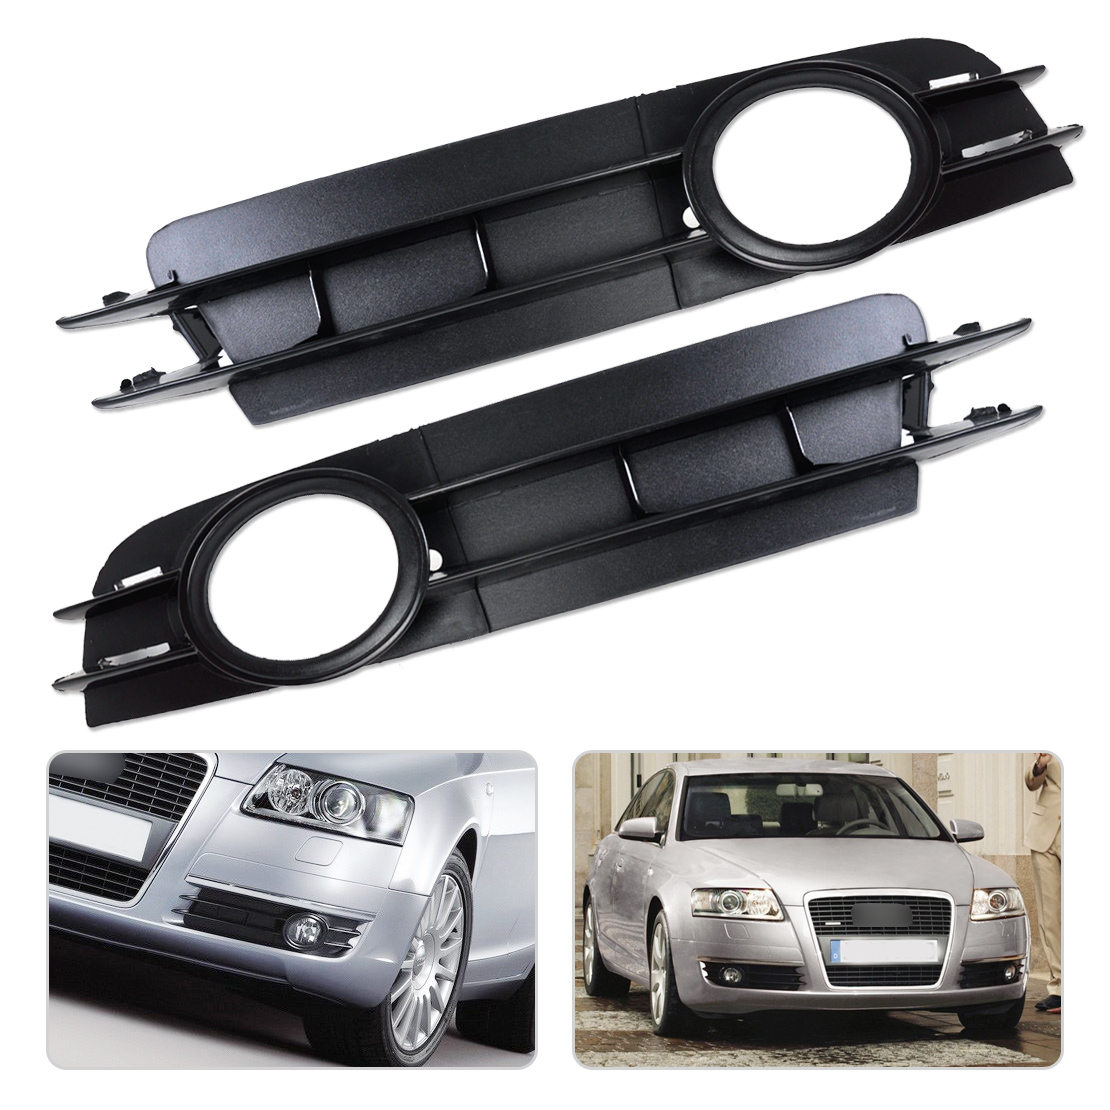 DWCX 2x Front Fog Light Lamp Grill Grille for <font><b>Audi</b></font> <font><b>A6</b></font> and <font><b>A6</b></font> Quattro C6 2005 <font><b>2006</b></font> 2007 2008 4F0807681A 4F0807682A image